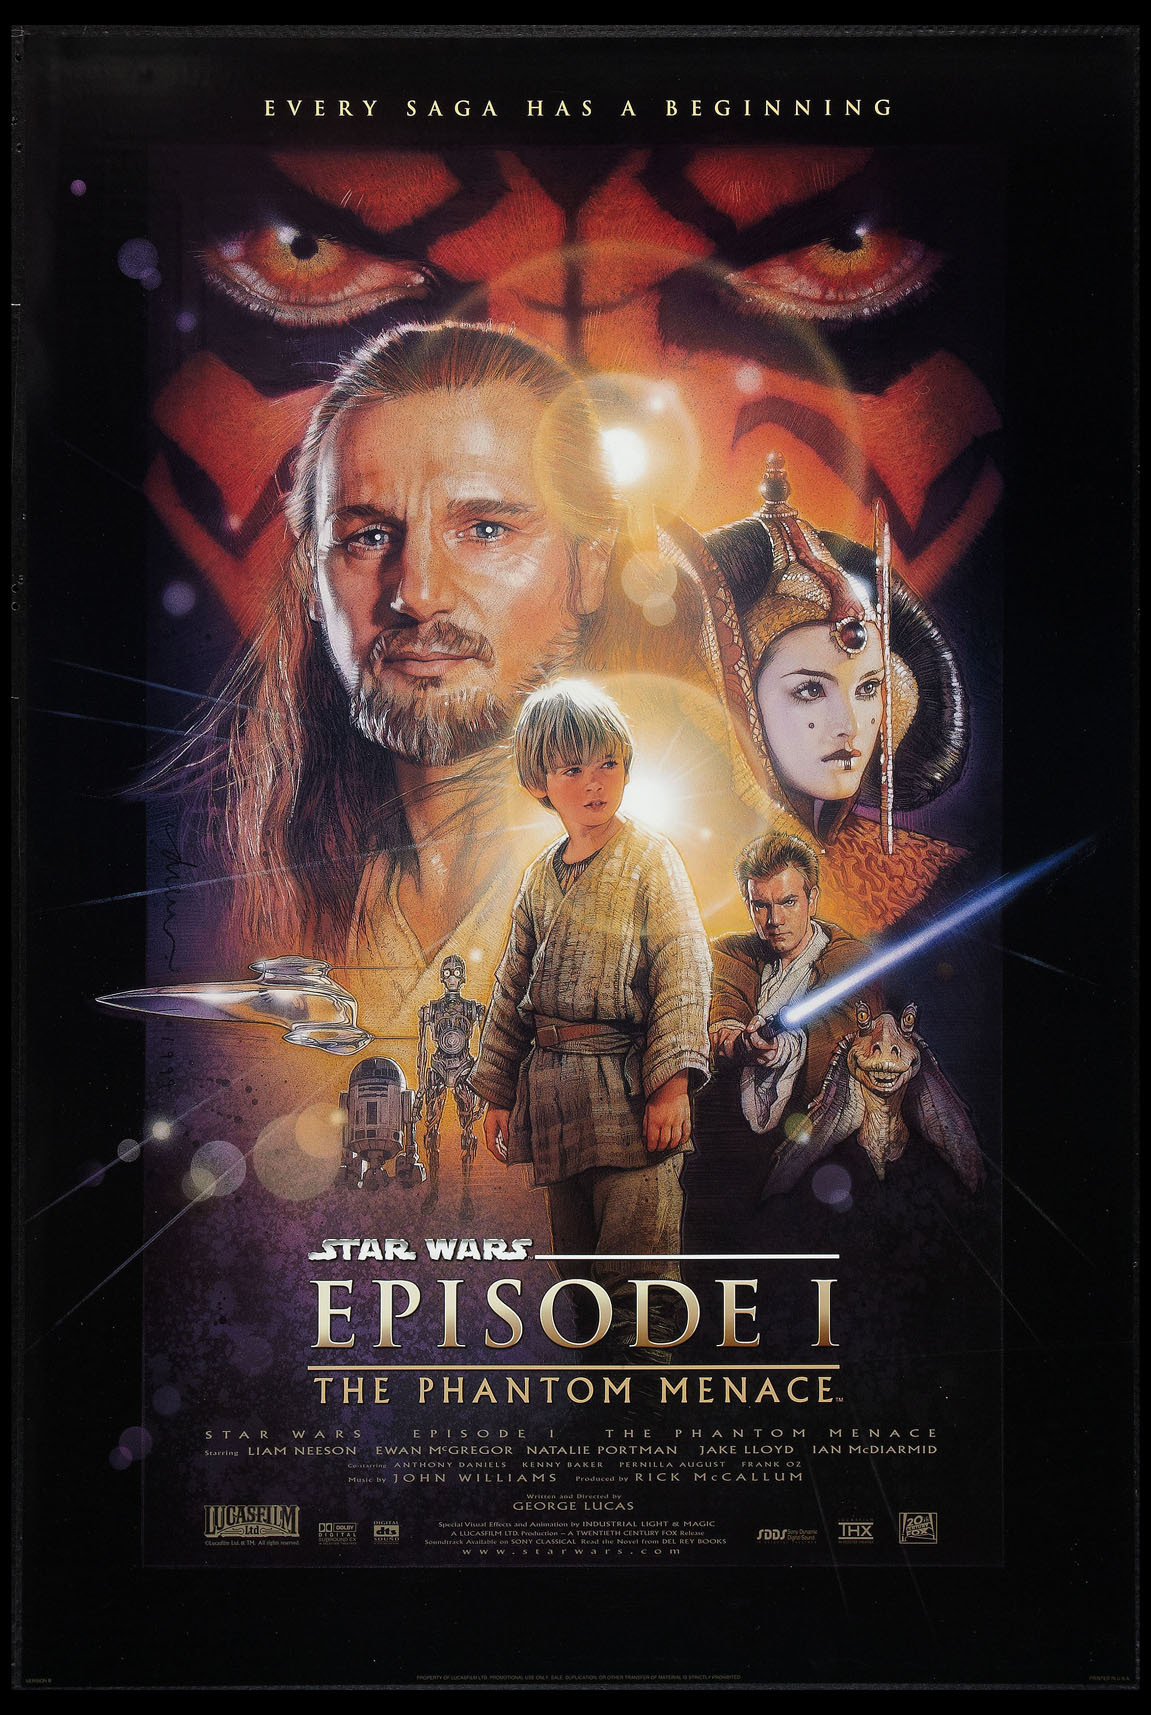 STAR WARS: Episode I - The Phantom Menace @ FilmPosters.com